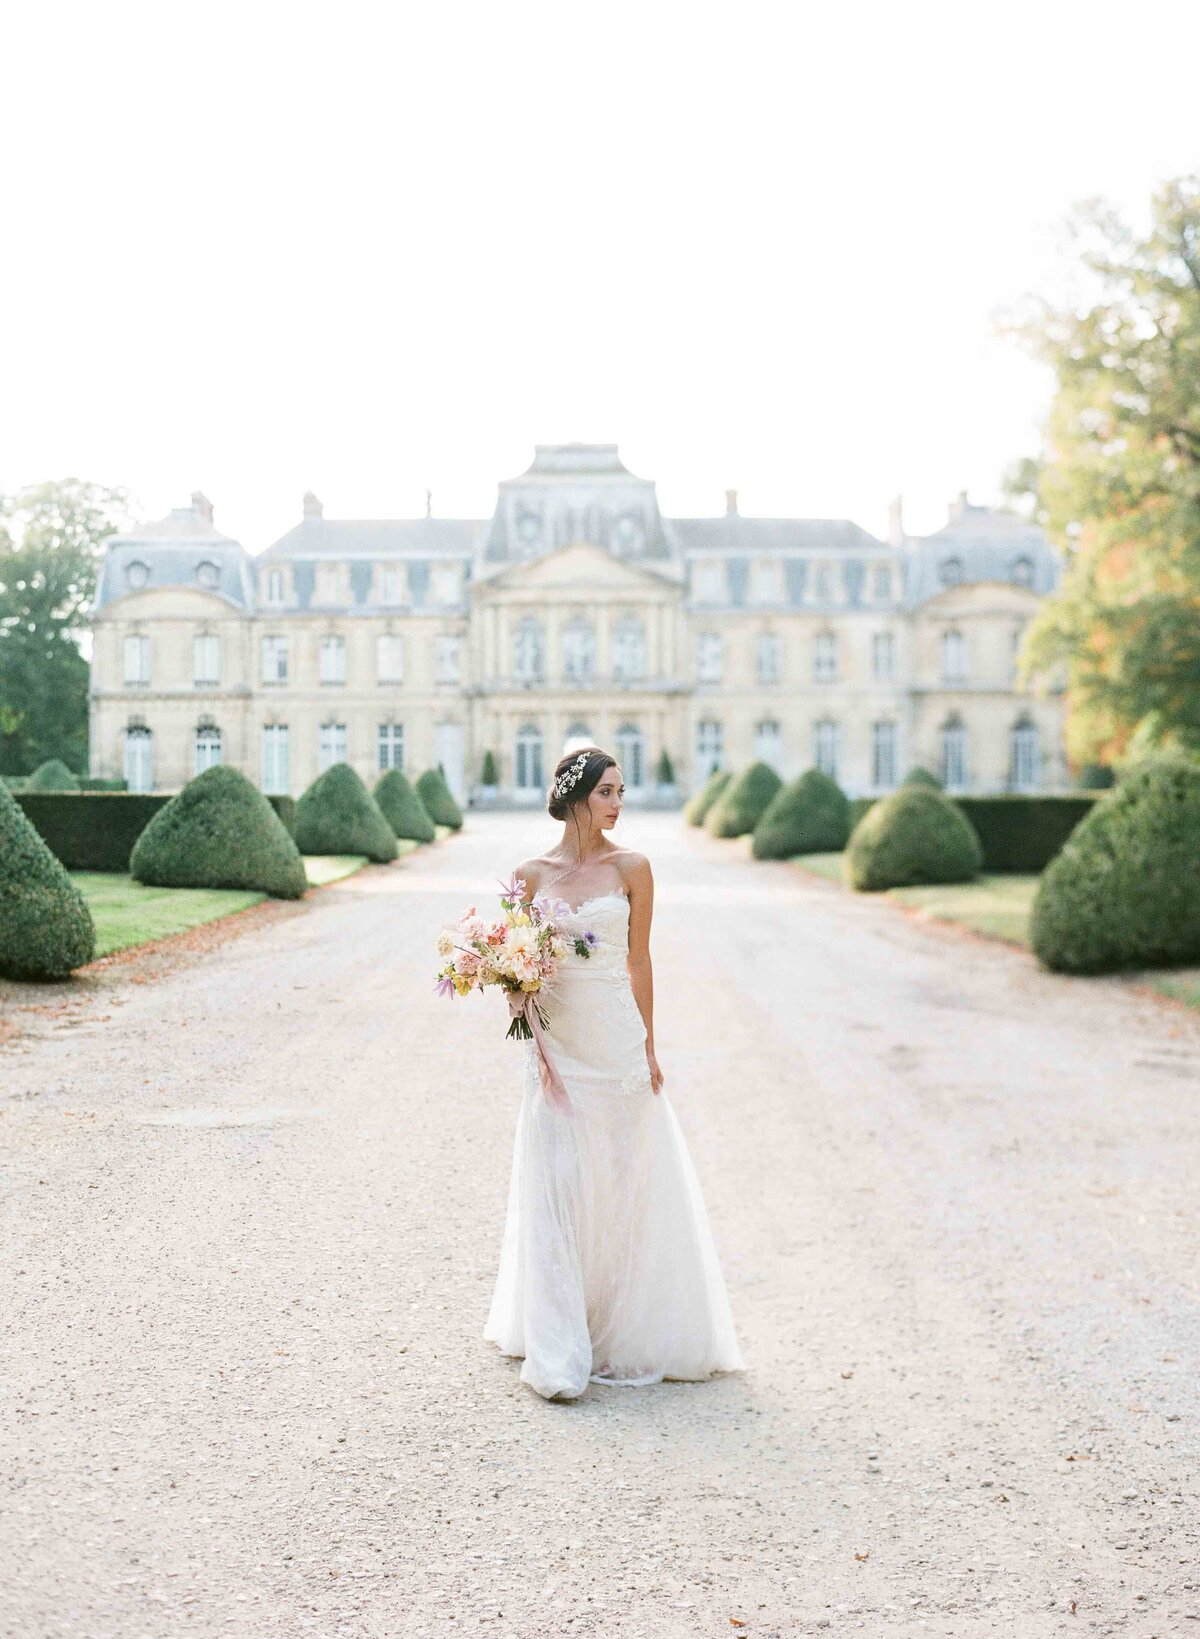 Luxury bride in fron of Chateau de Champlatreux near Paris France